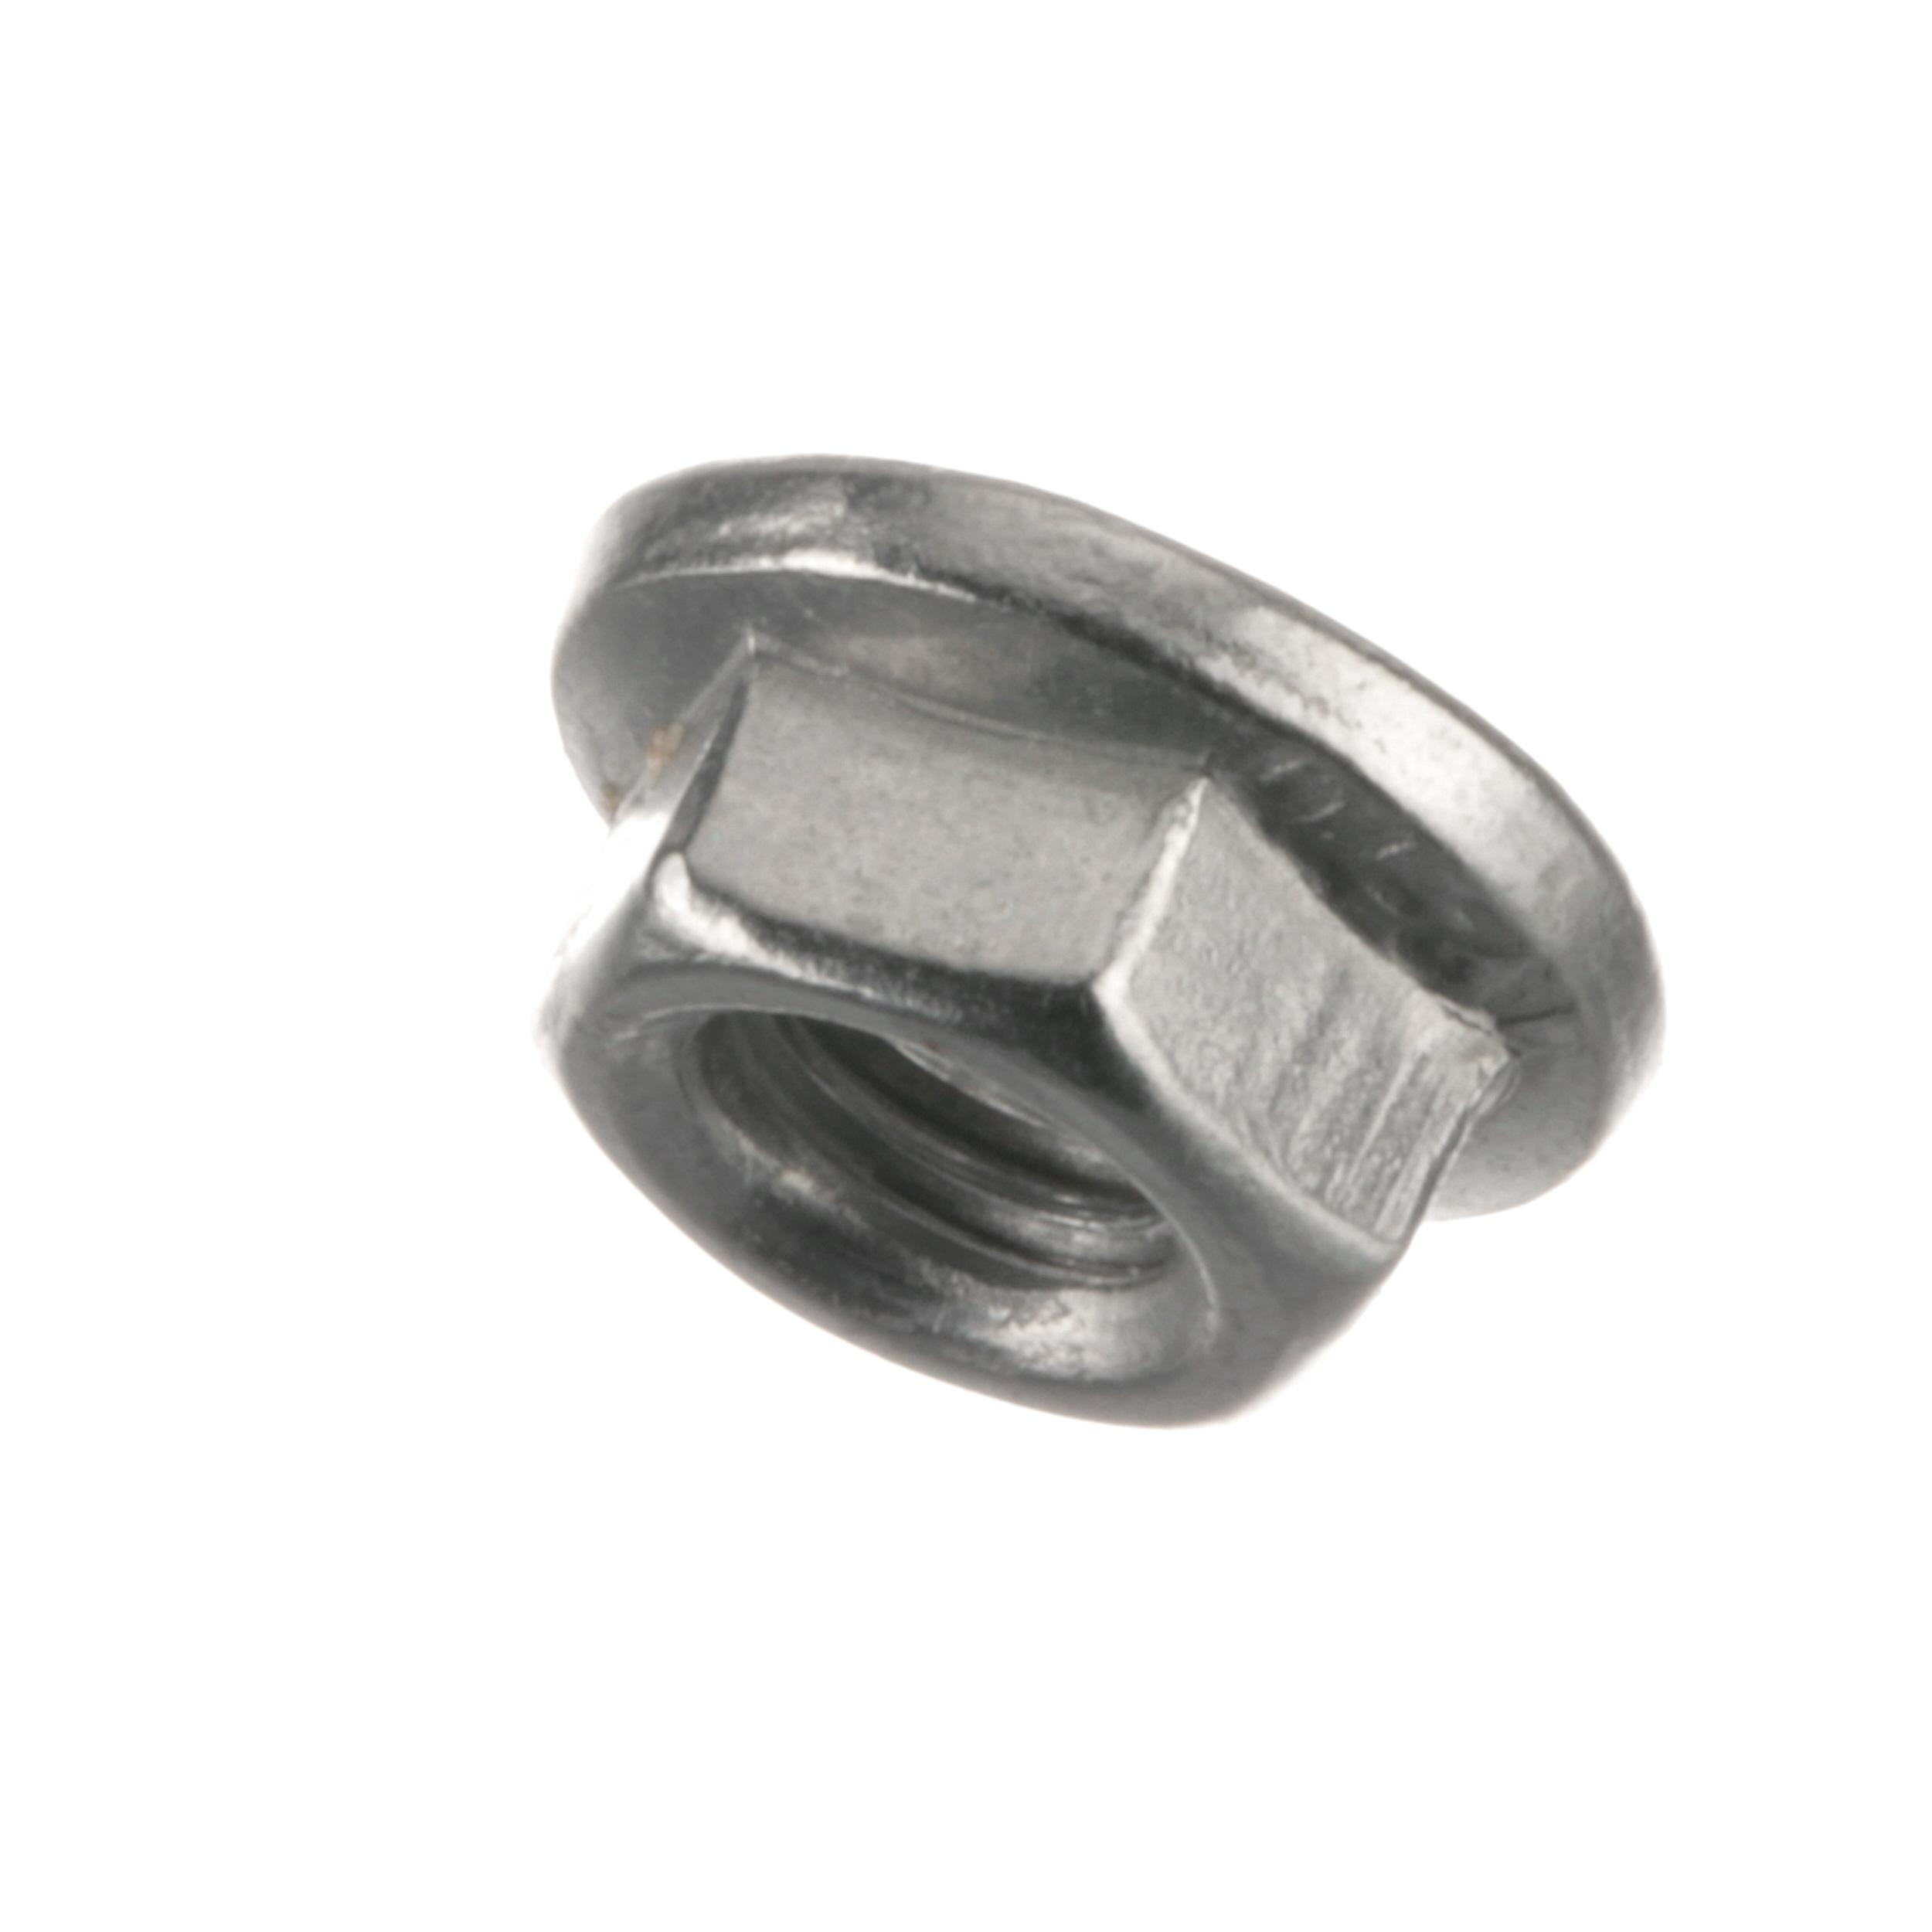 RATIONAL HEX NUT, 10 PACK